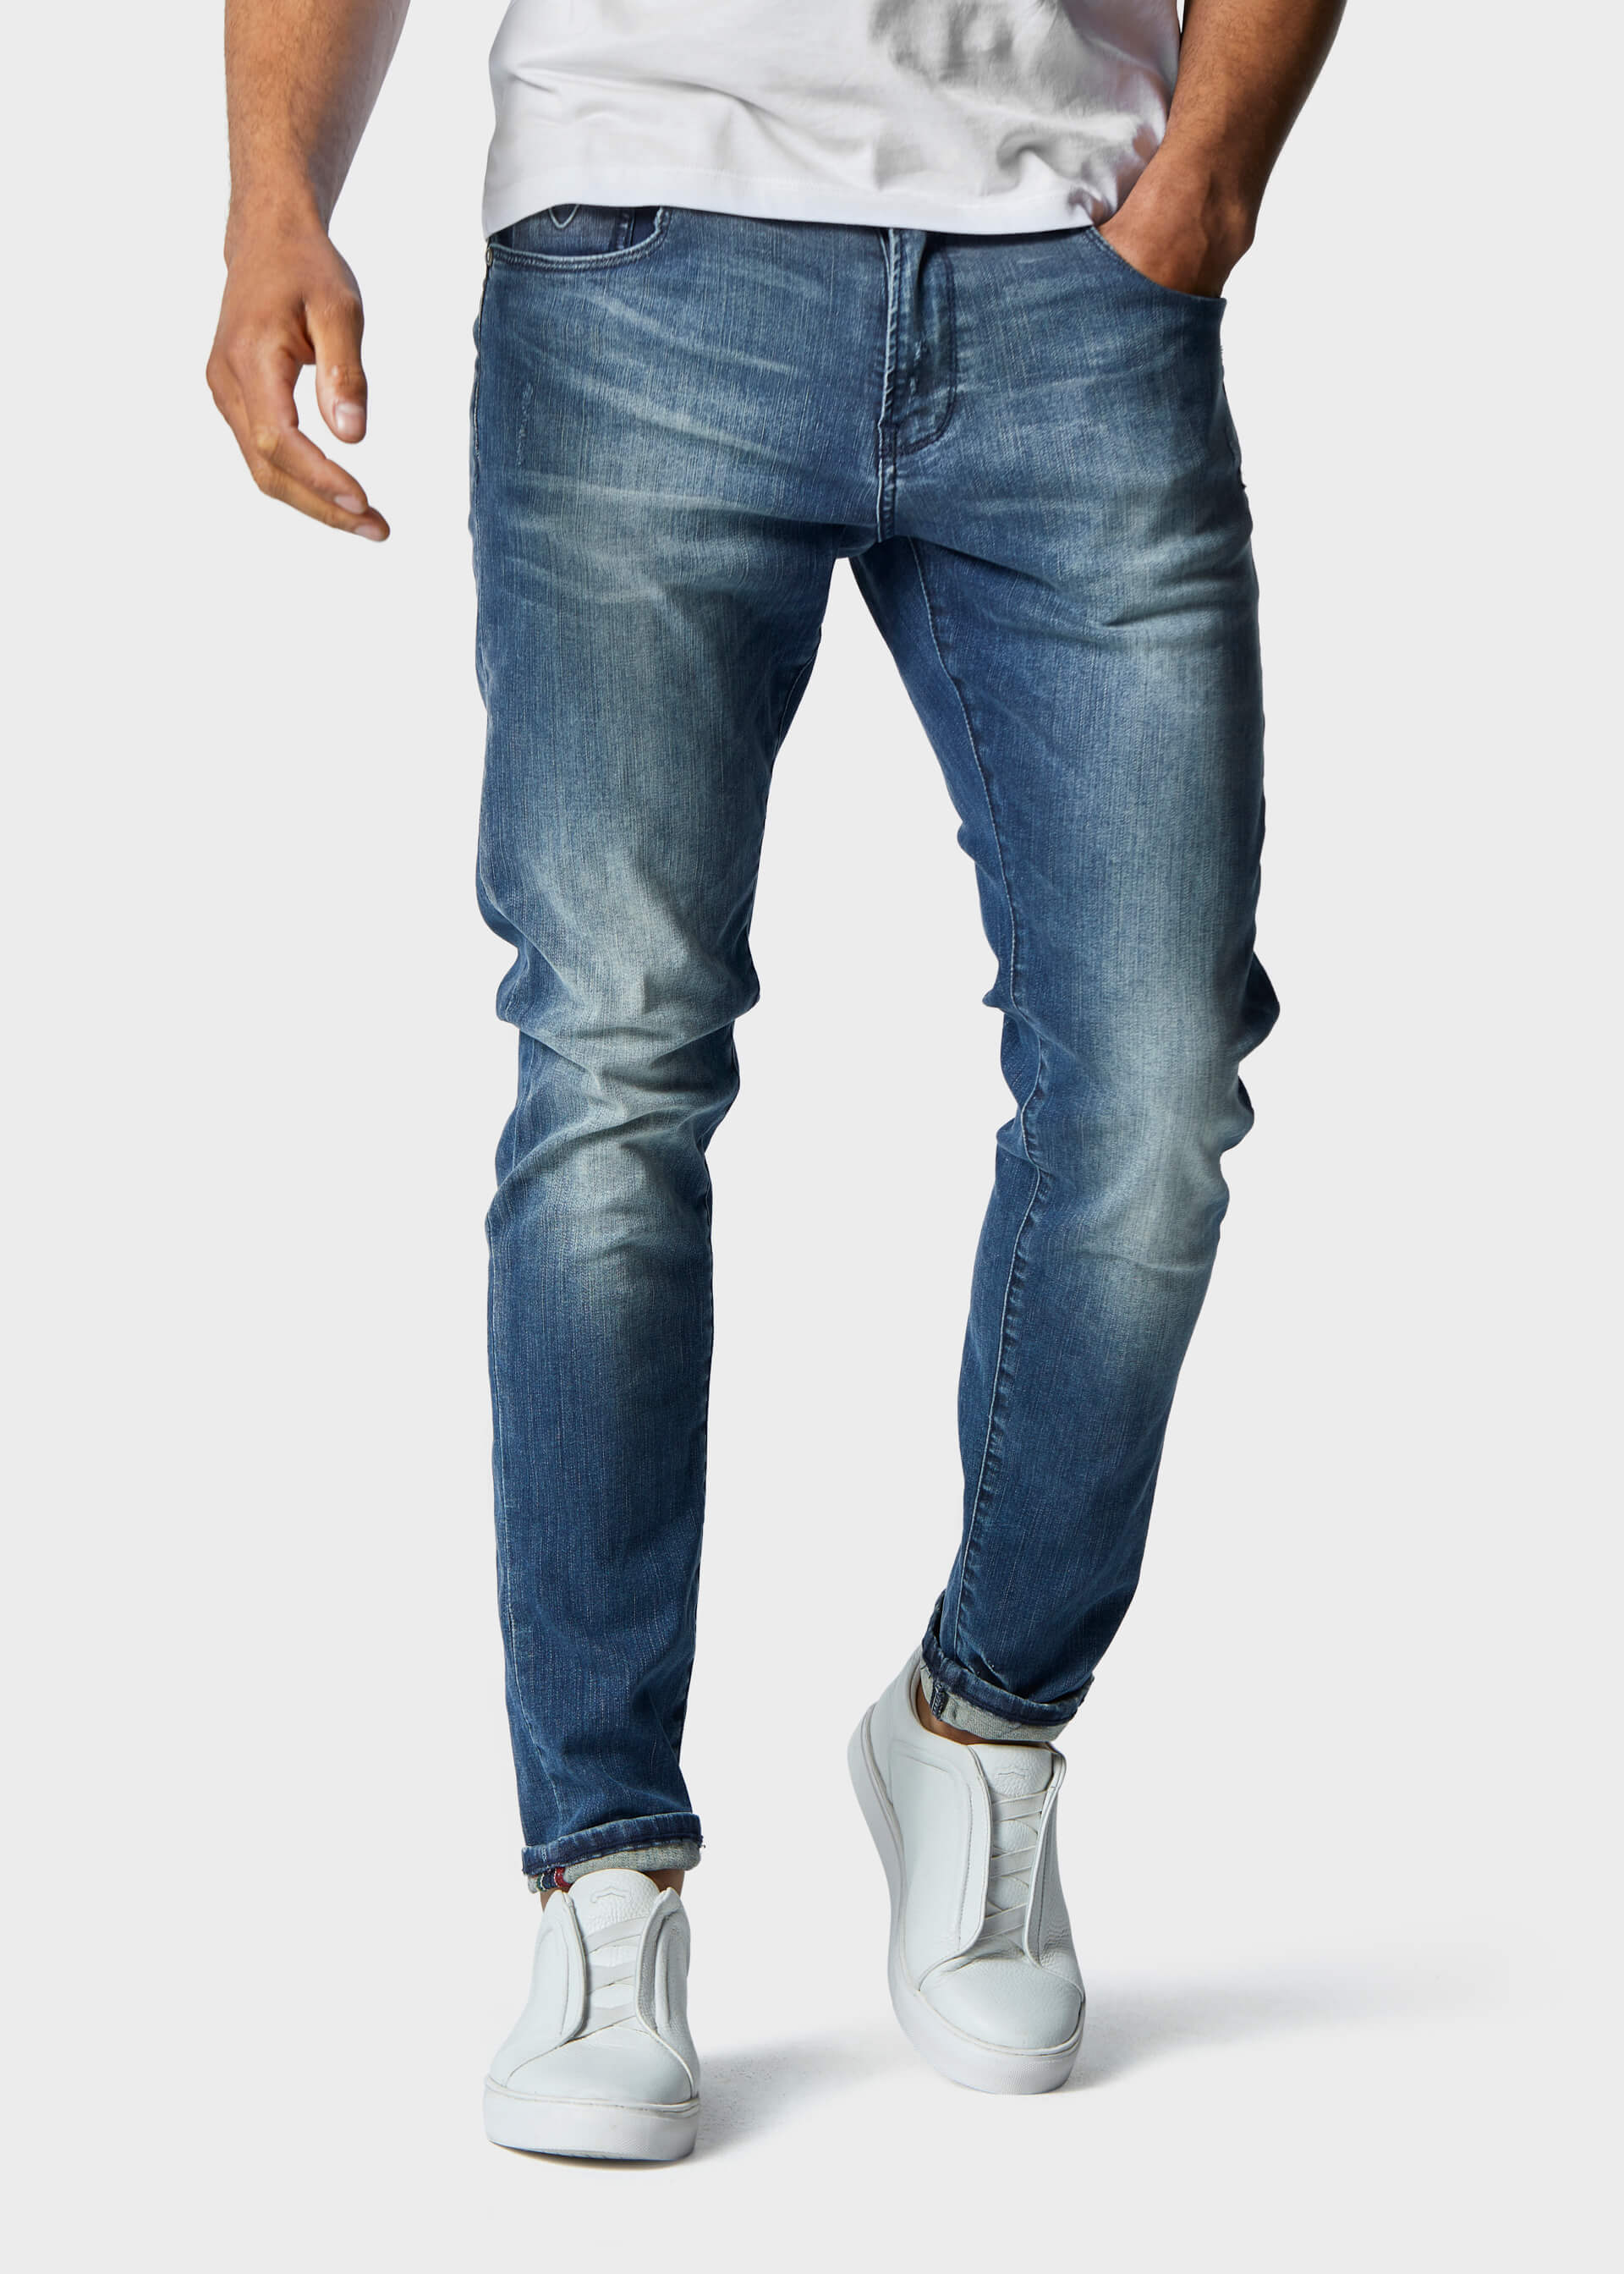 Moriarty Lak 537 Activeflex Super Stretch Mid Wash Jeans second_image